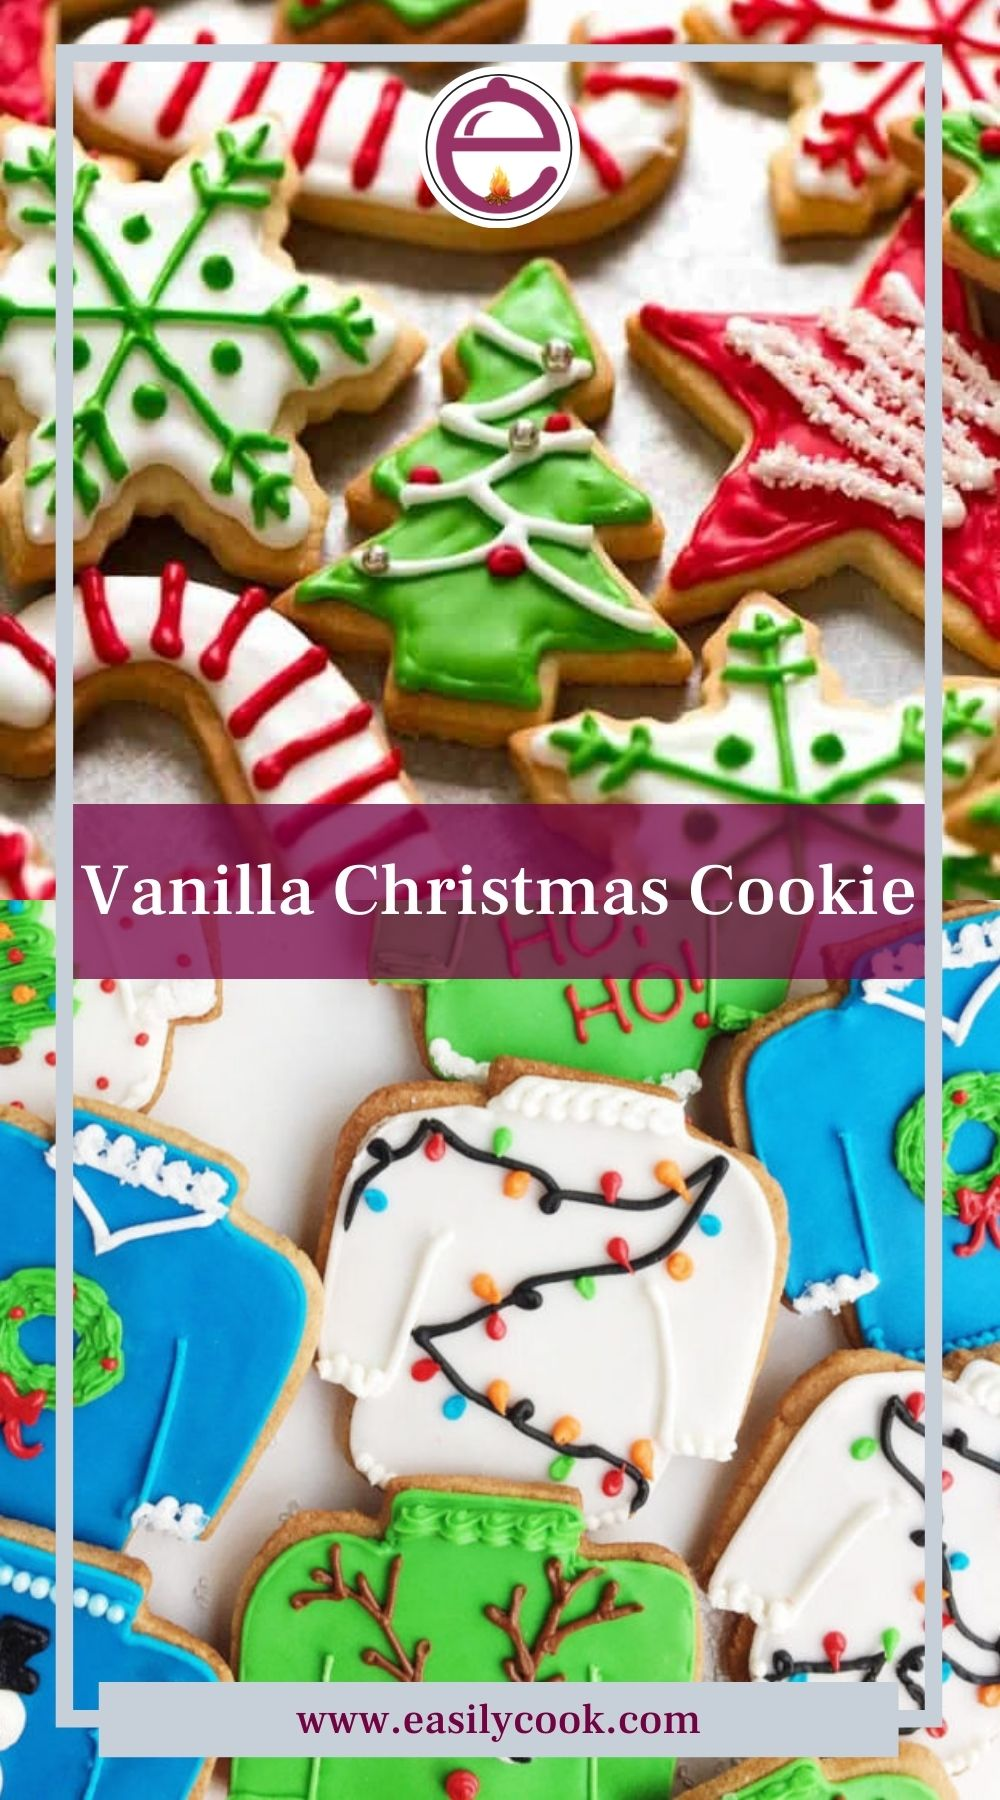 Vanilla Christmas Cookie